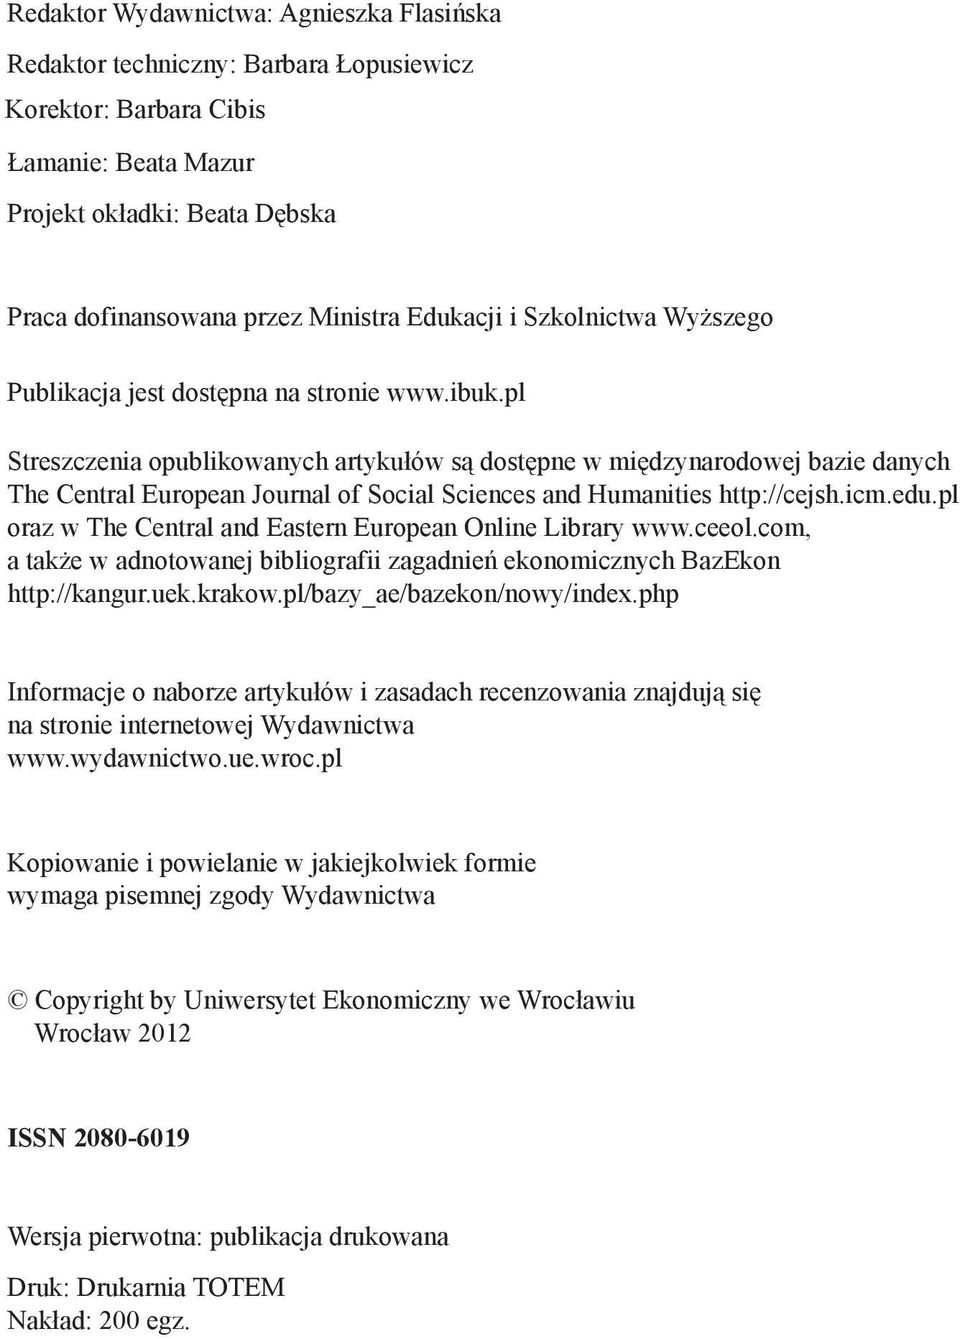 pl Streszczenia opublikowanych artykułów są dostępne w międzynarodowej bazie danych The Central European Journal of Social Sciences and Humanities http://cejsh.icm.edu.